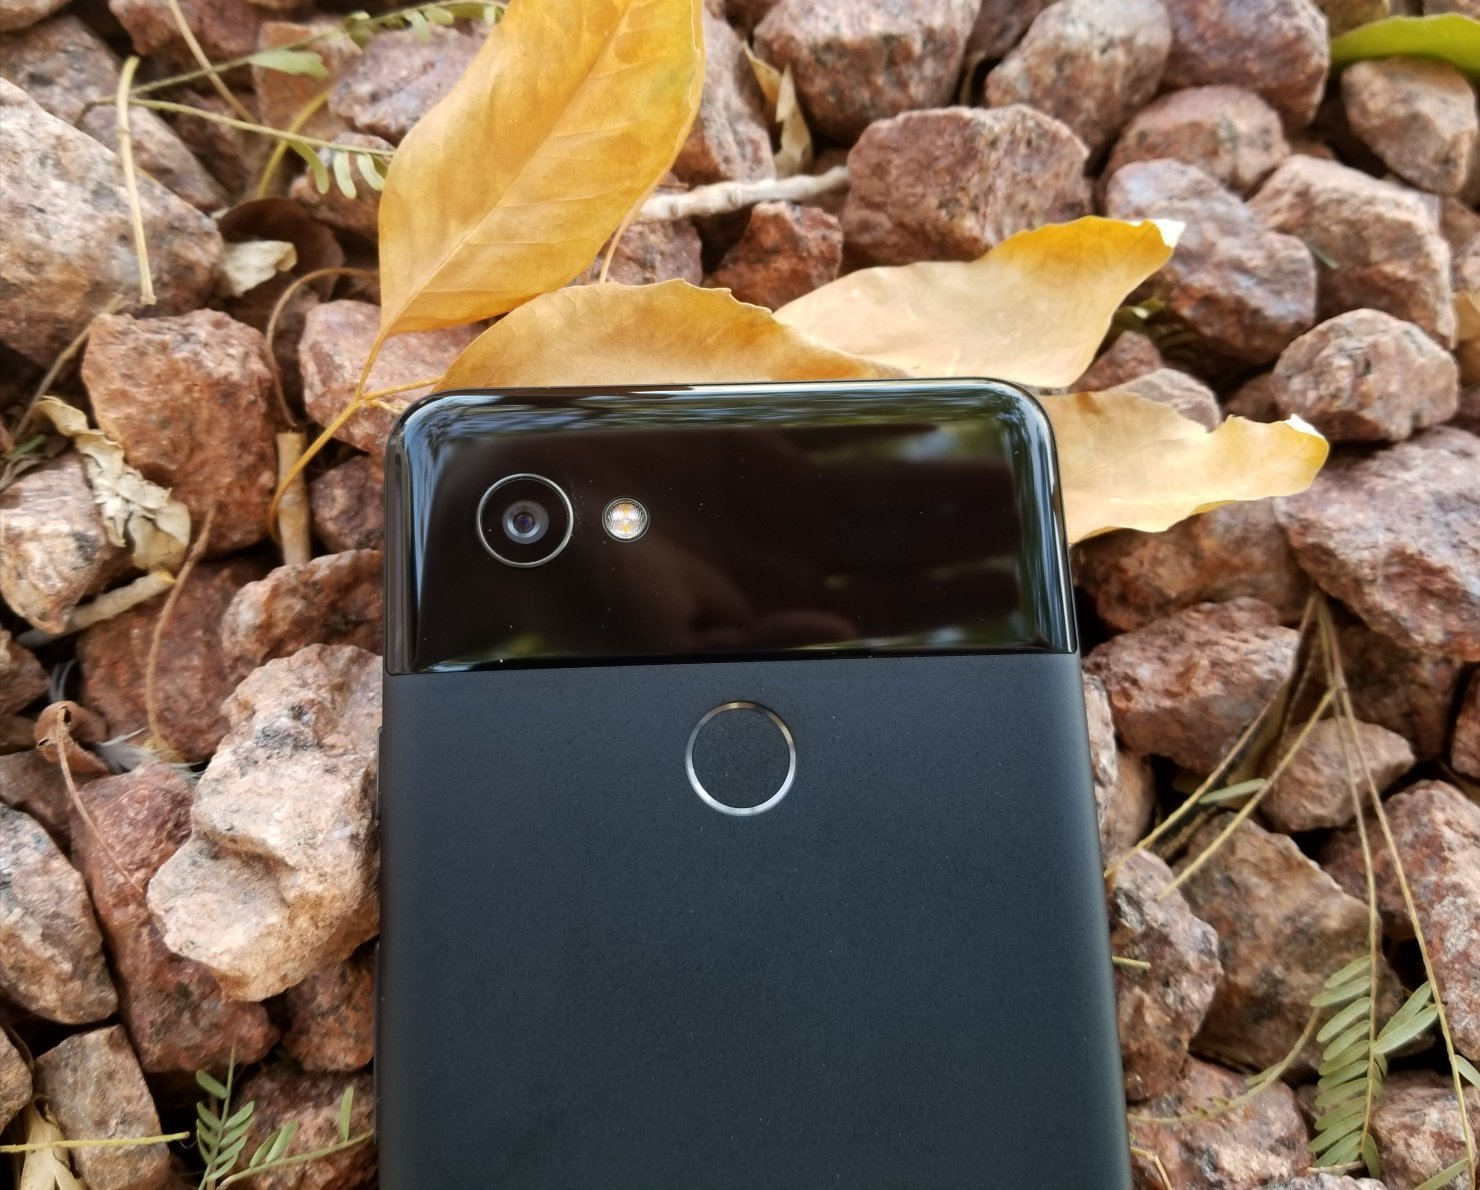 July Pixel Android 9 Pie Update: What to Know